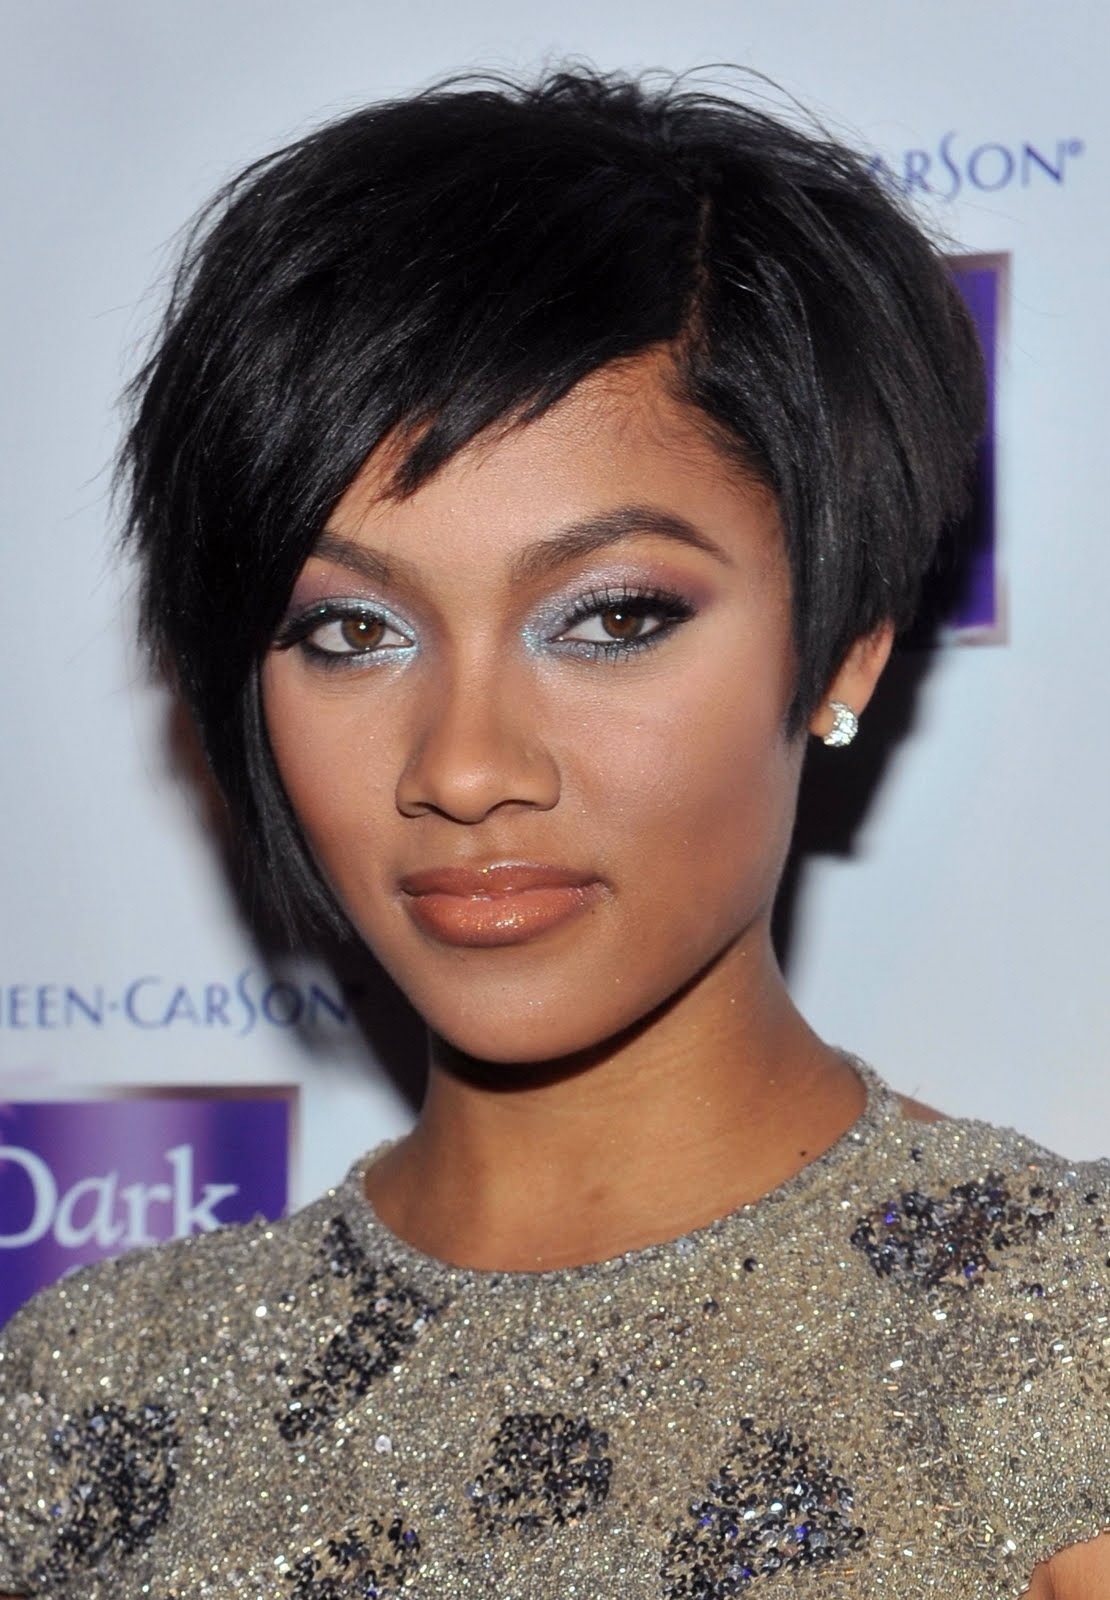 Magnificent Very Short Black Hairstyles 2012 Short Hairstyles For Women And Man Hairstyle Inspiration Daily Dogsangcom